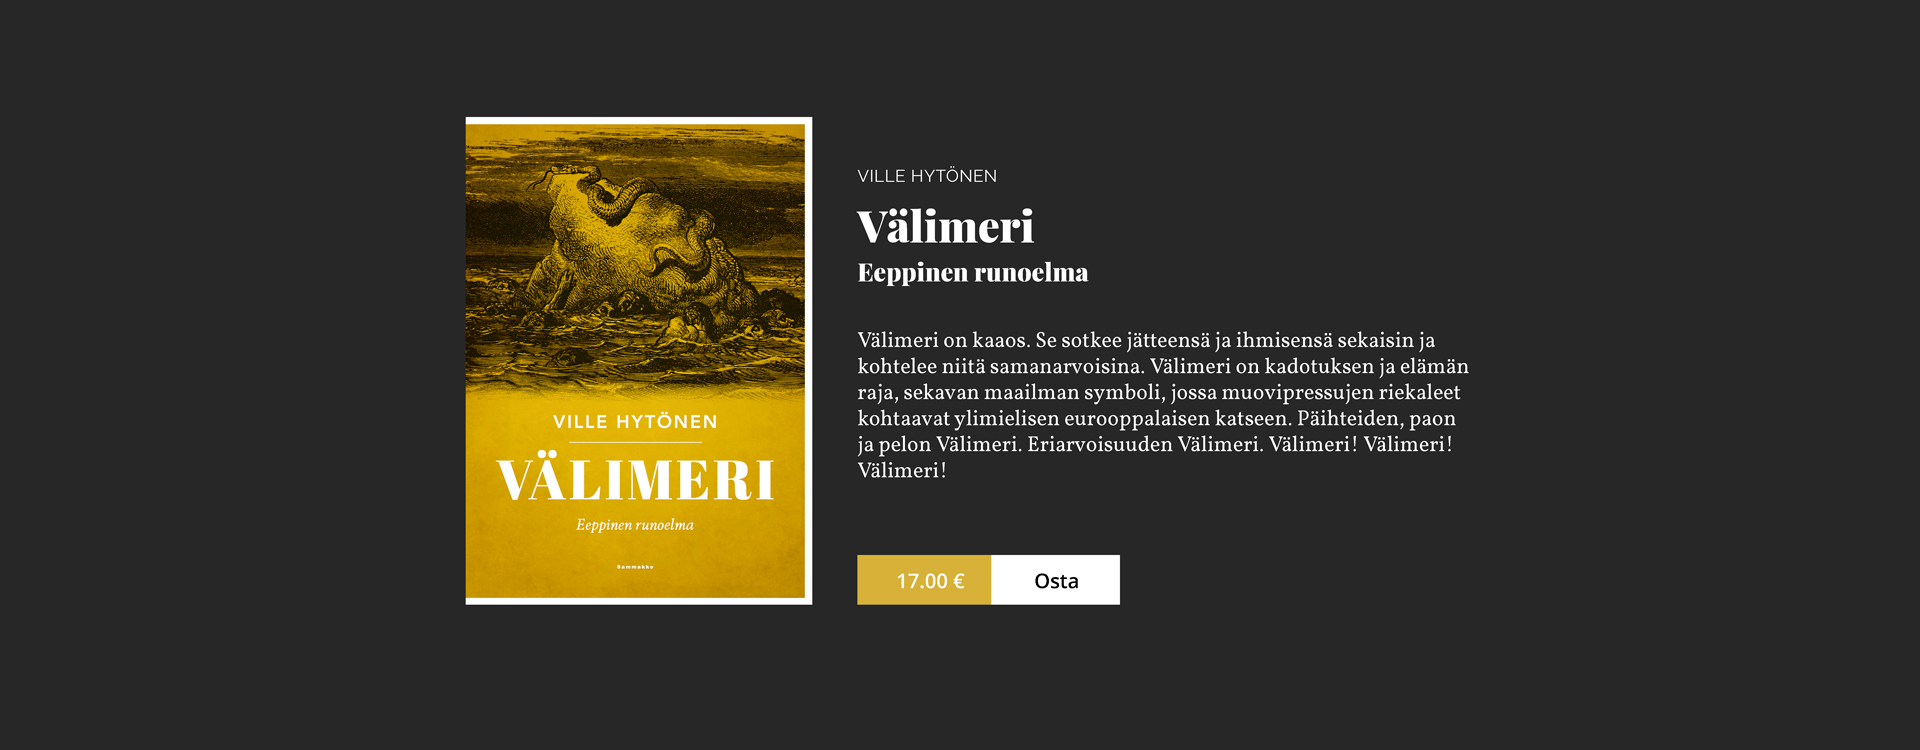 Valimeri-slidemainos